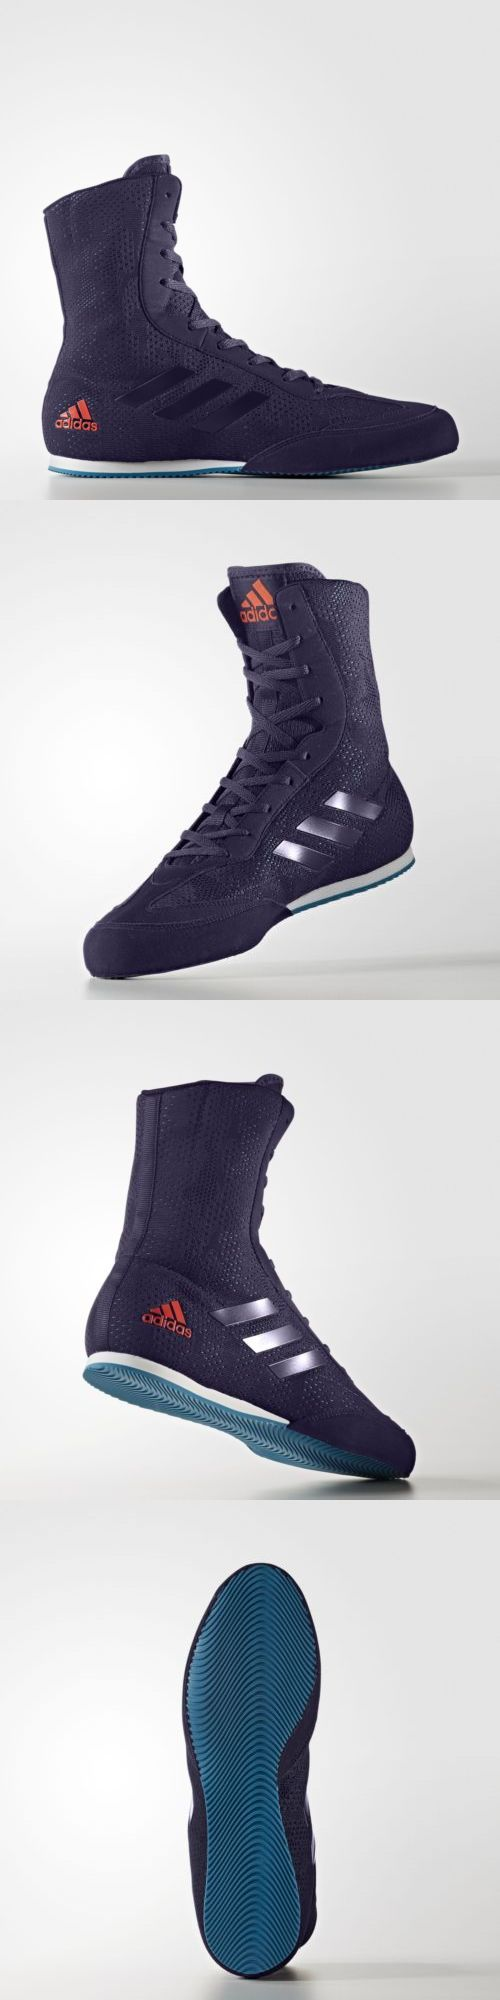 Shoes and Footwear 73989: Adidas Boxing Box Hog Plus Boxing Boots - Petrol Blue -> BUY IT NOW ONLY: $105 on eBay!